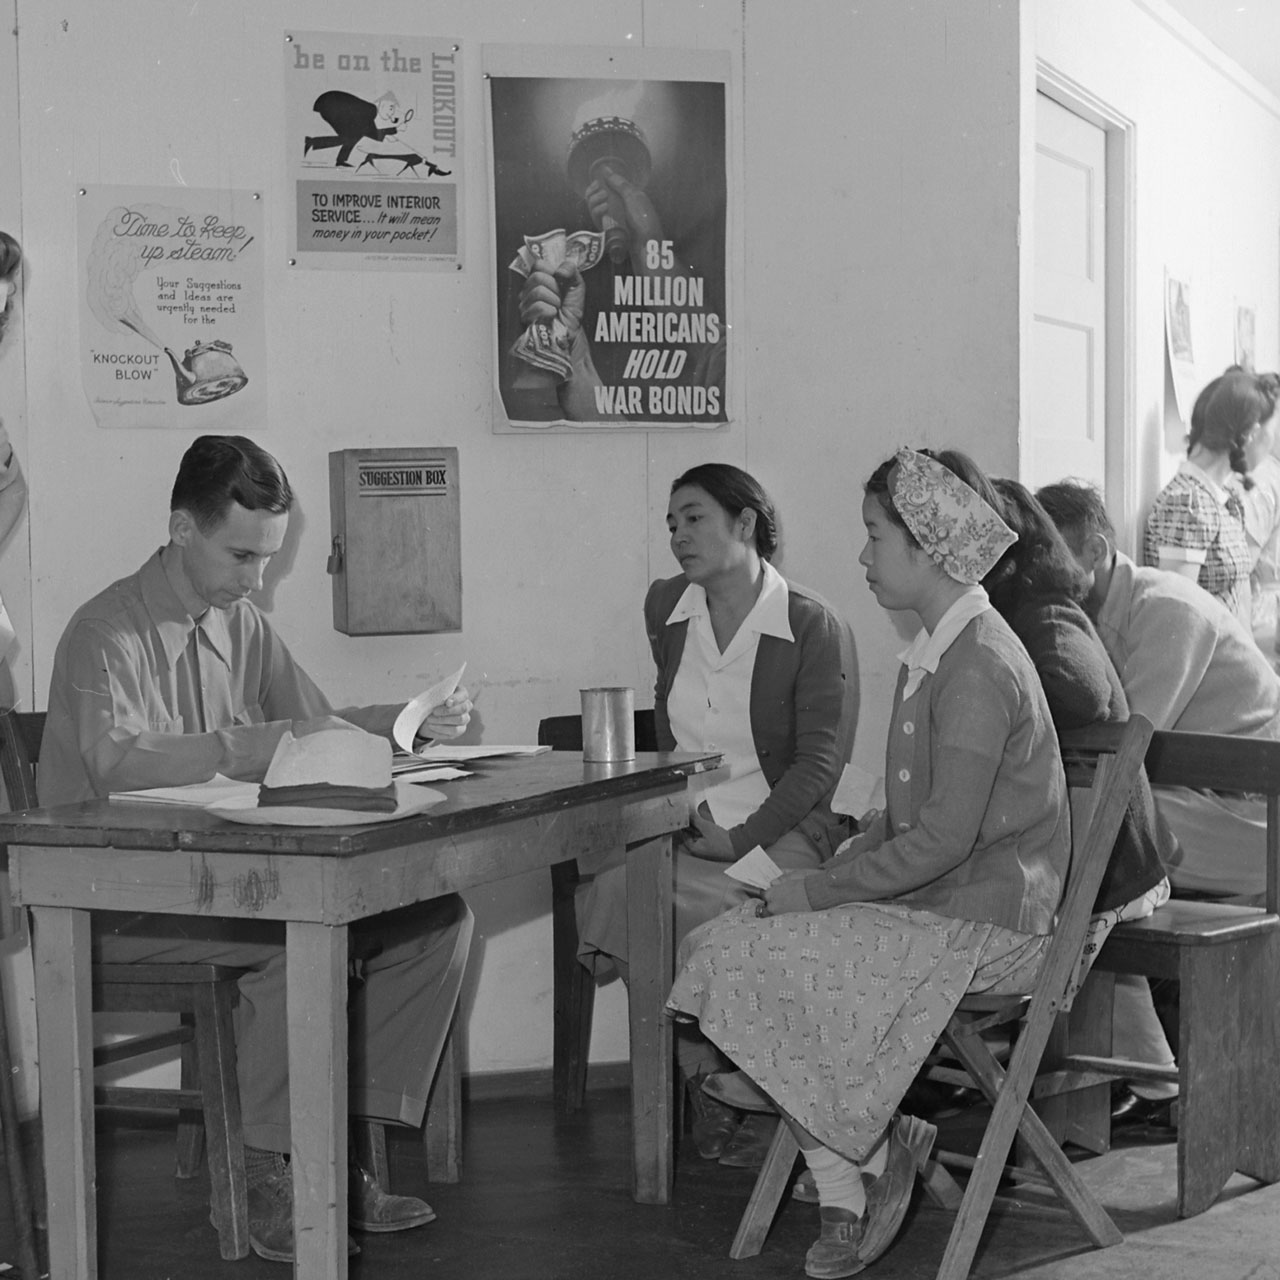 Poston,_Arizona._Evacuees_waiting_in_line_inside_the_administration_building._These_lines_for_eve_._._._-_NARA_-_539876